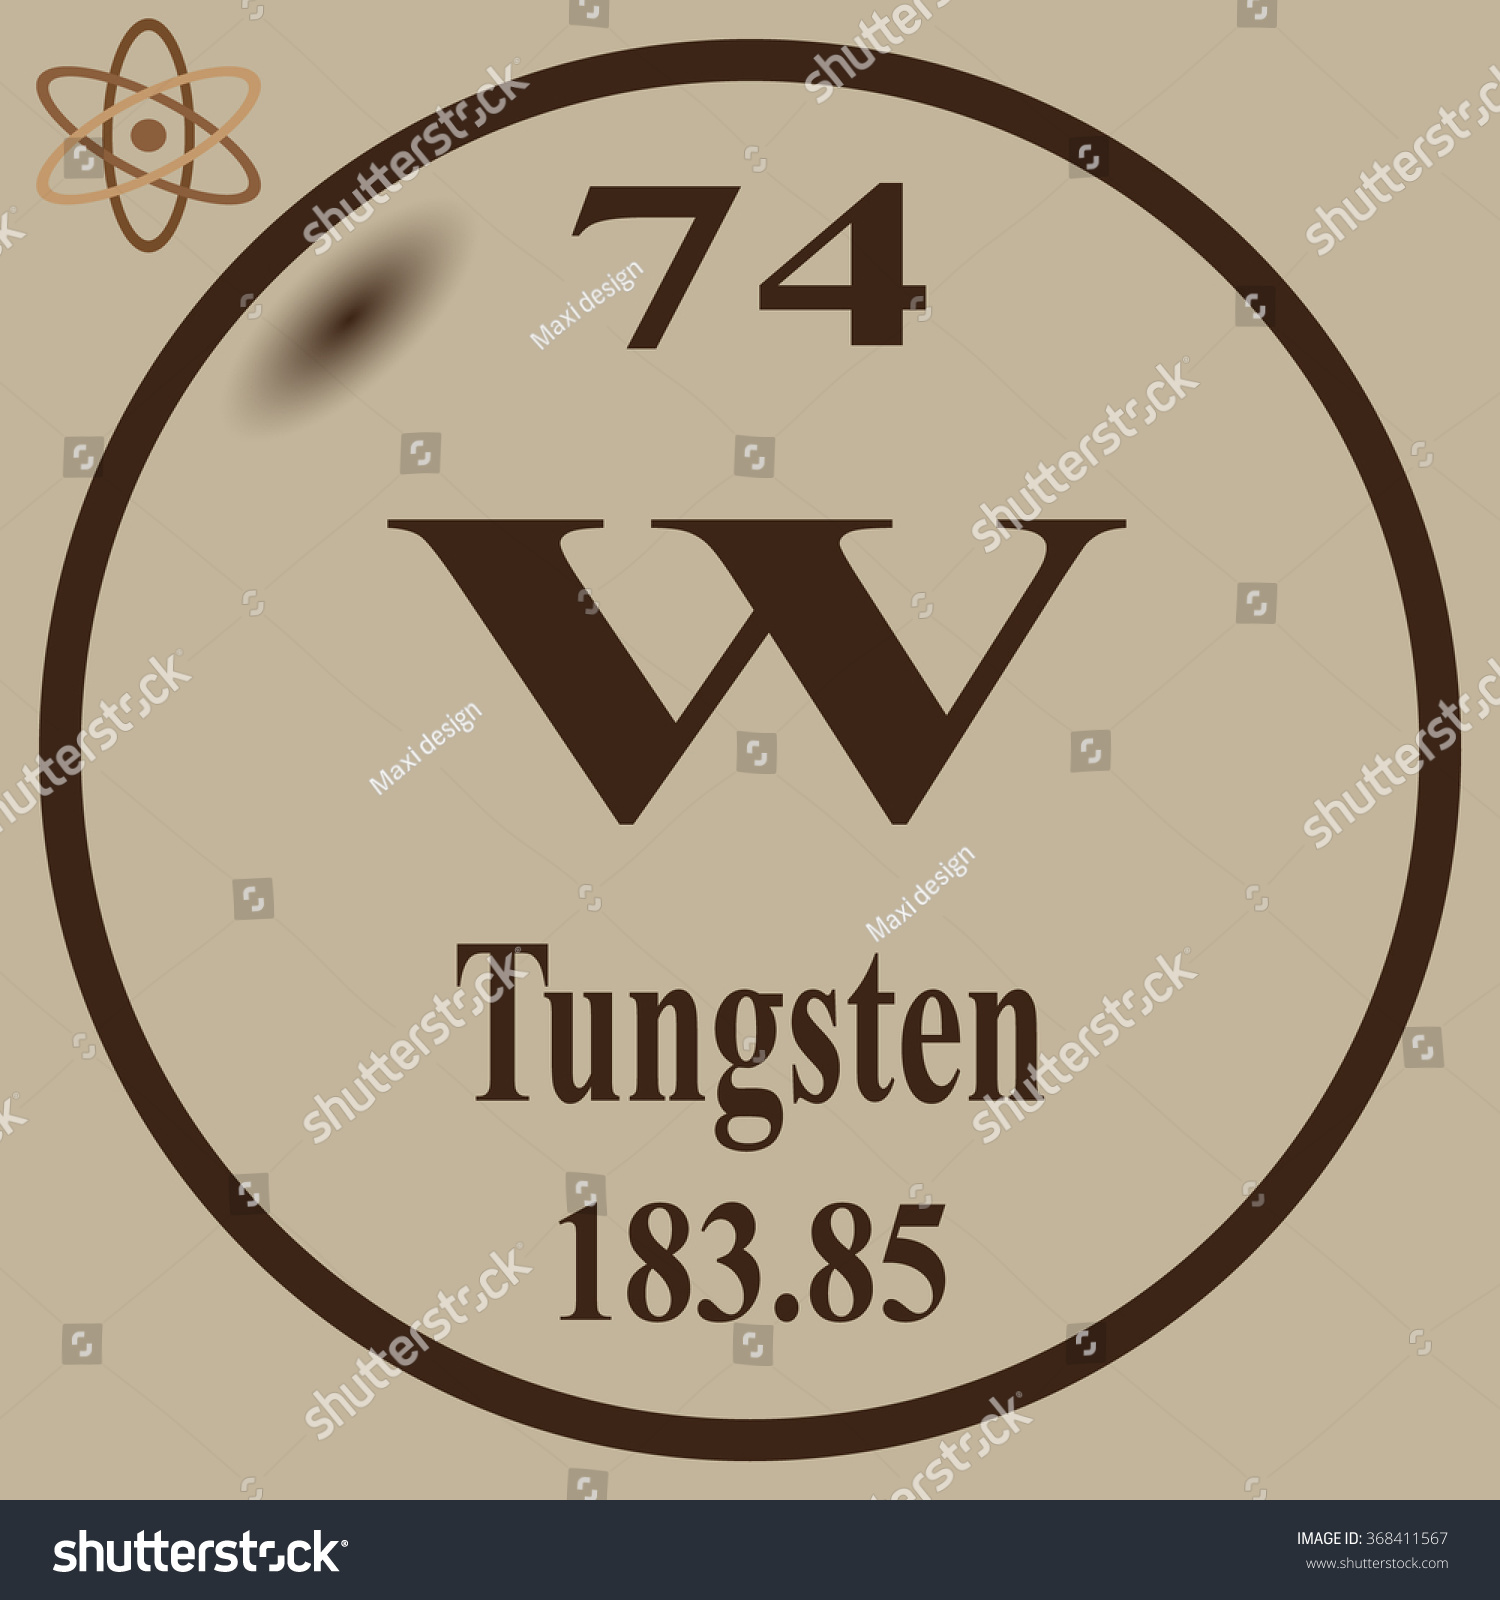 Periodic table elements tungsten stock vector 368411567 shutterstock periodic table of elements tungsten urtaz Choice Image